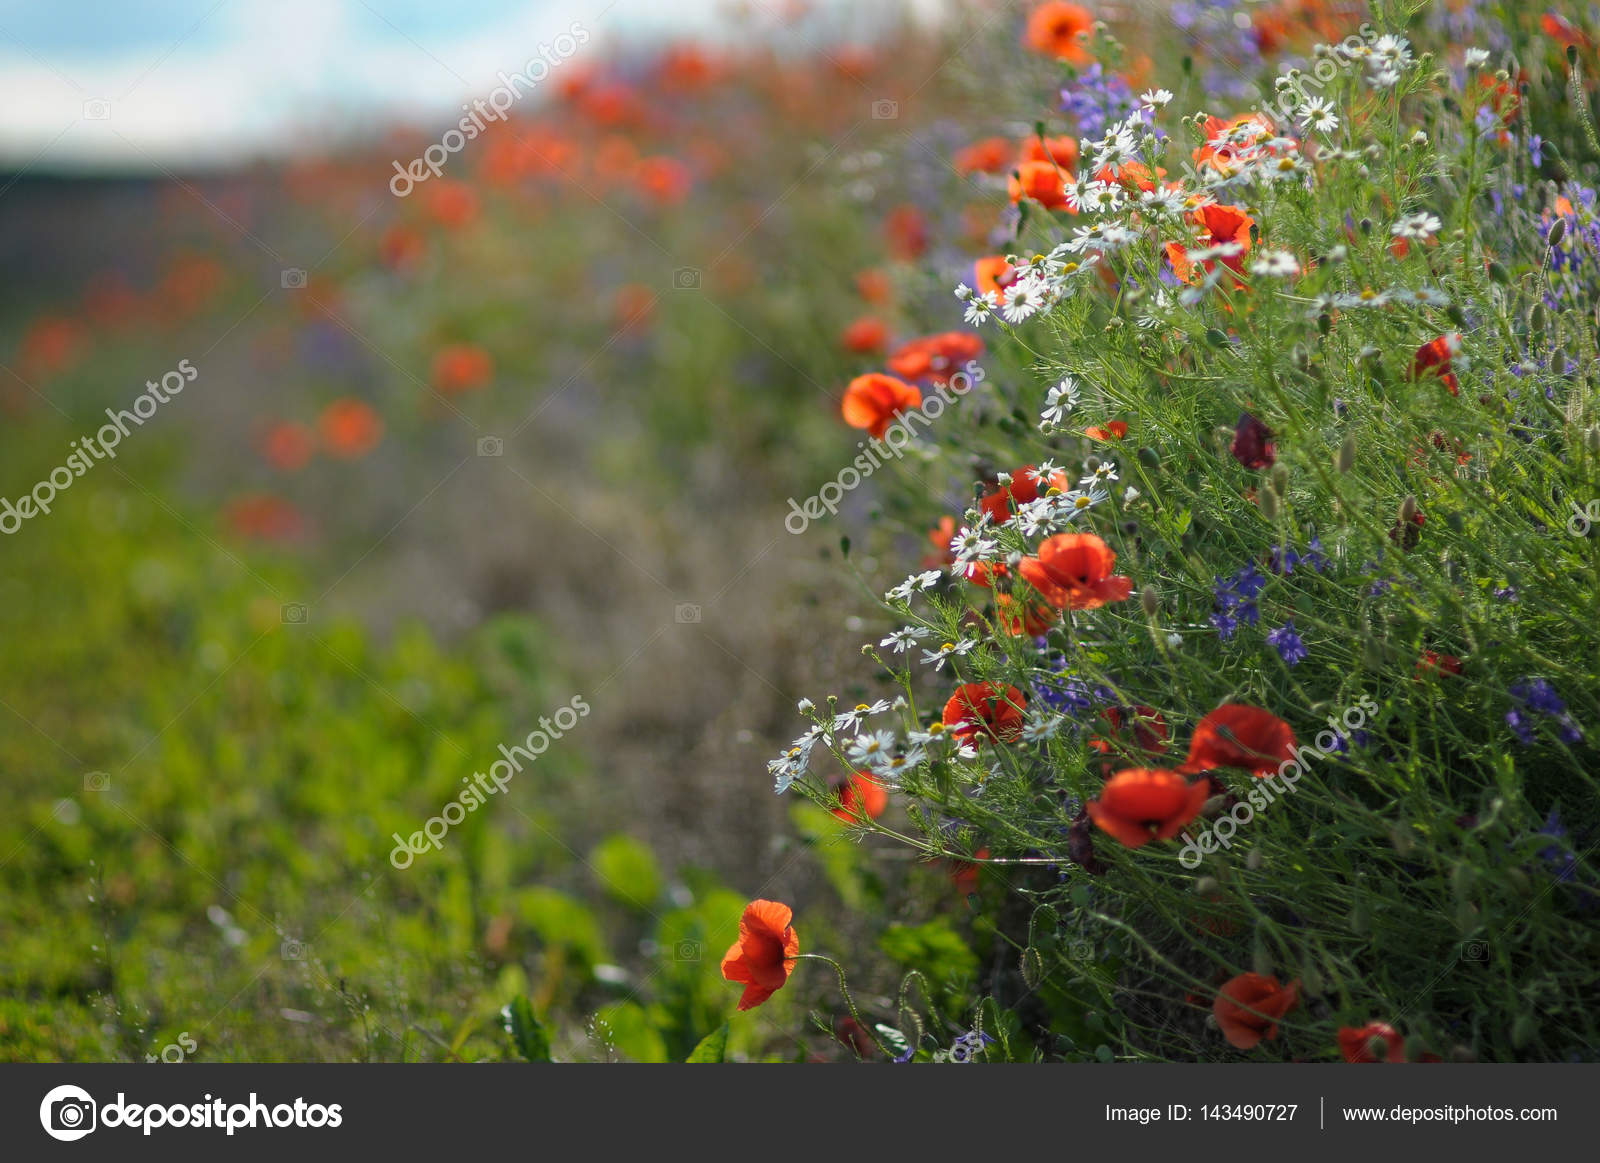 Wild flowers daisies and poppies along field paths stock photo wild flowers daisies and poppies along field paths stock photo izmirmasajfo